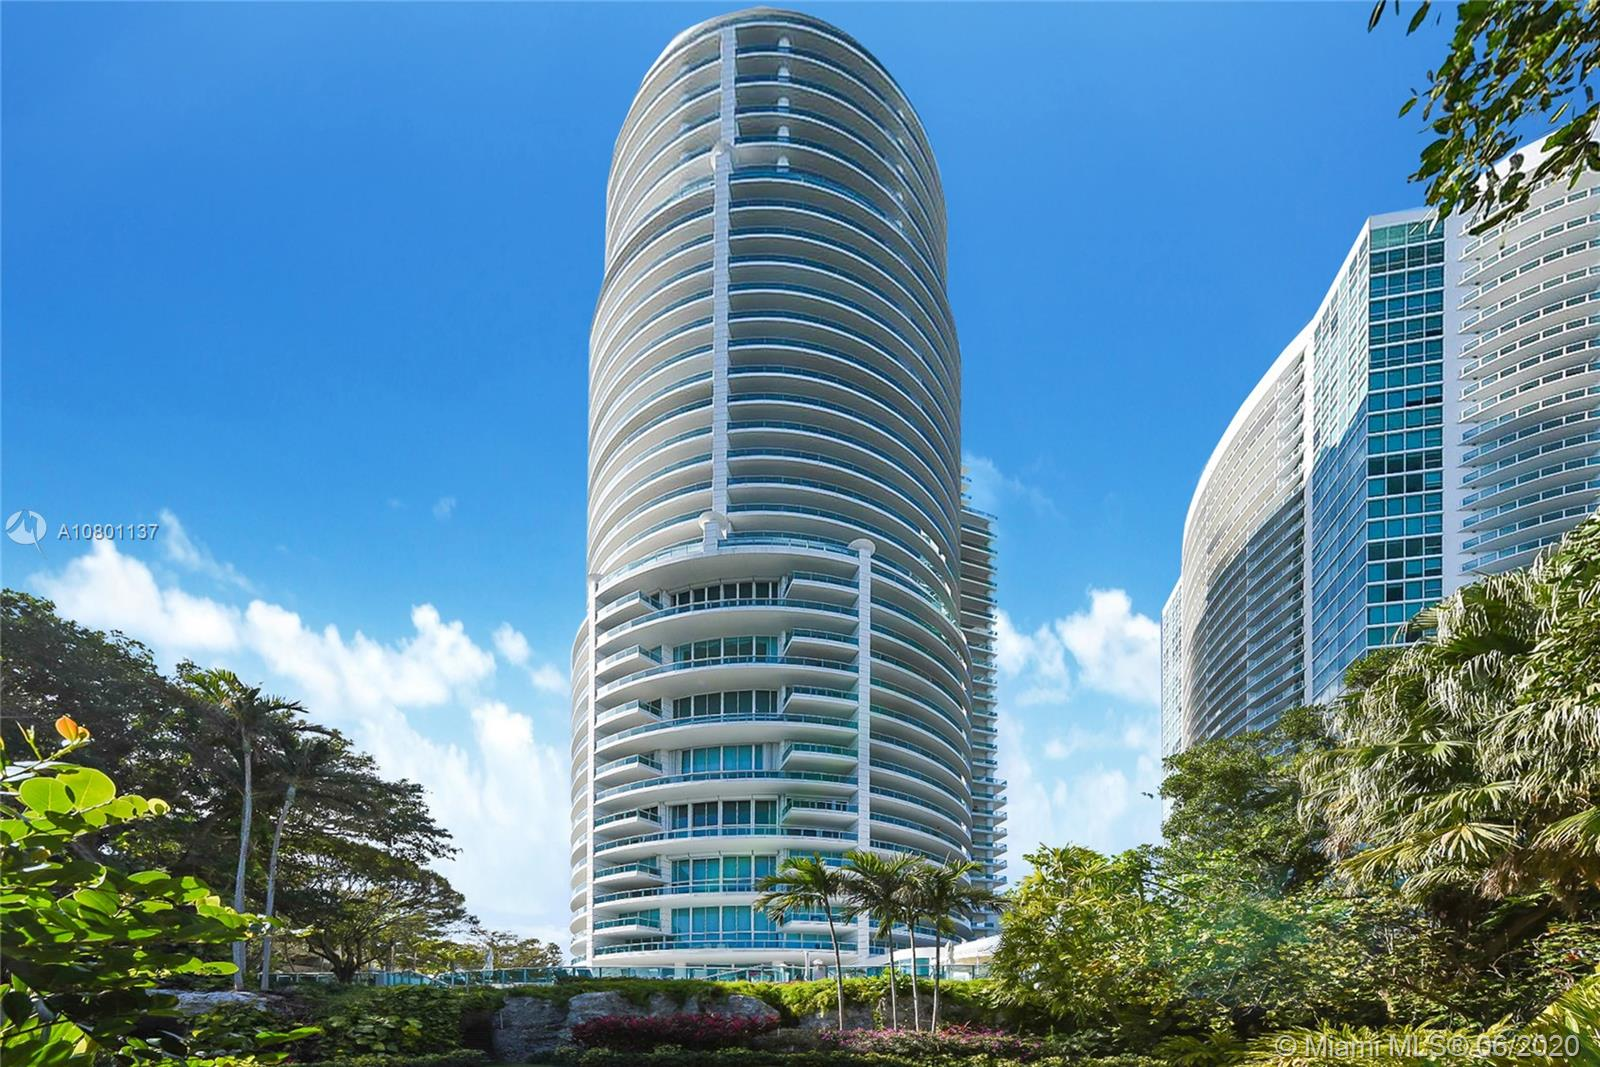 2127  Brickell Avenue #705 For Sale A10801137, FL